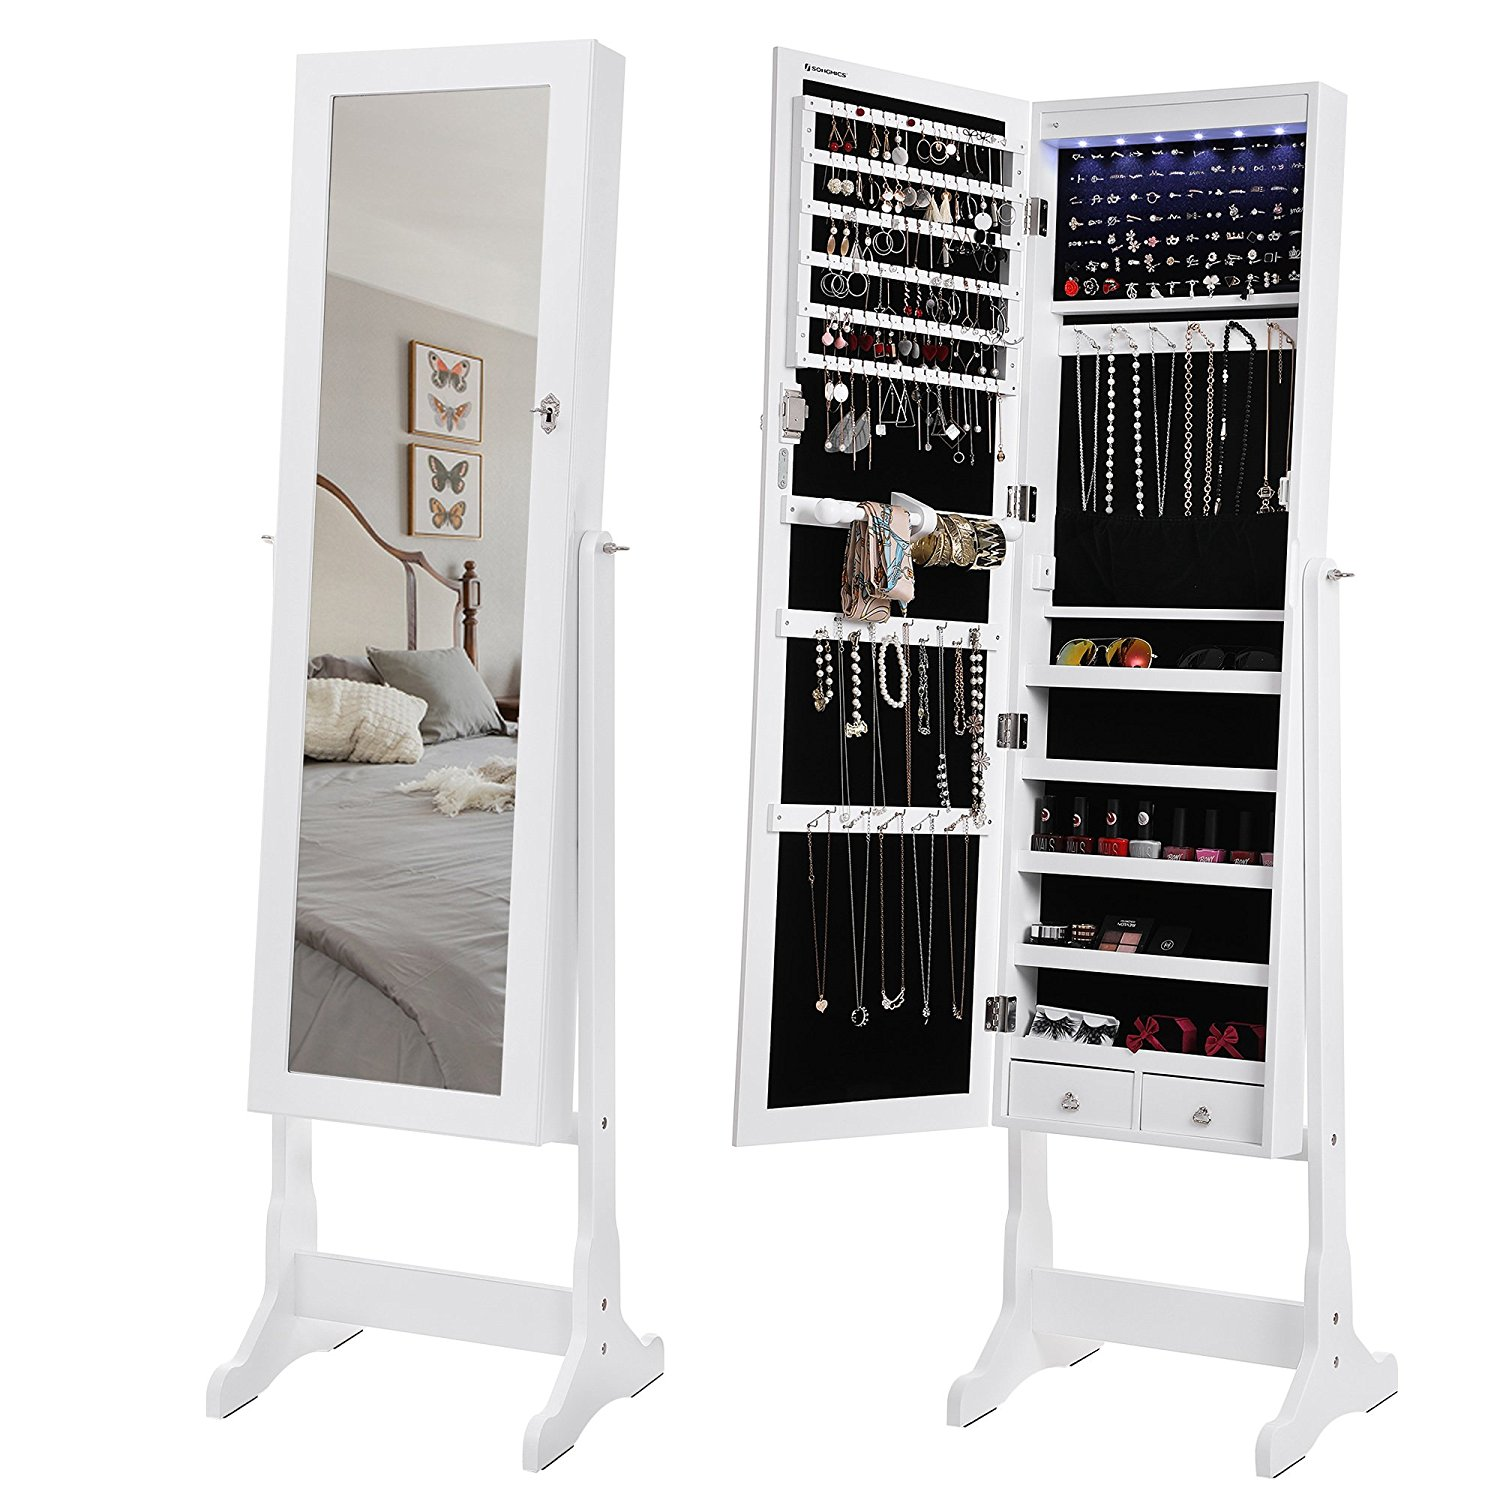 13 cyber monday deals you can get on amazon furniture - Armoire miroir a bijoux ...